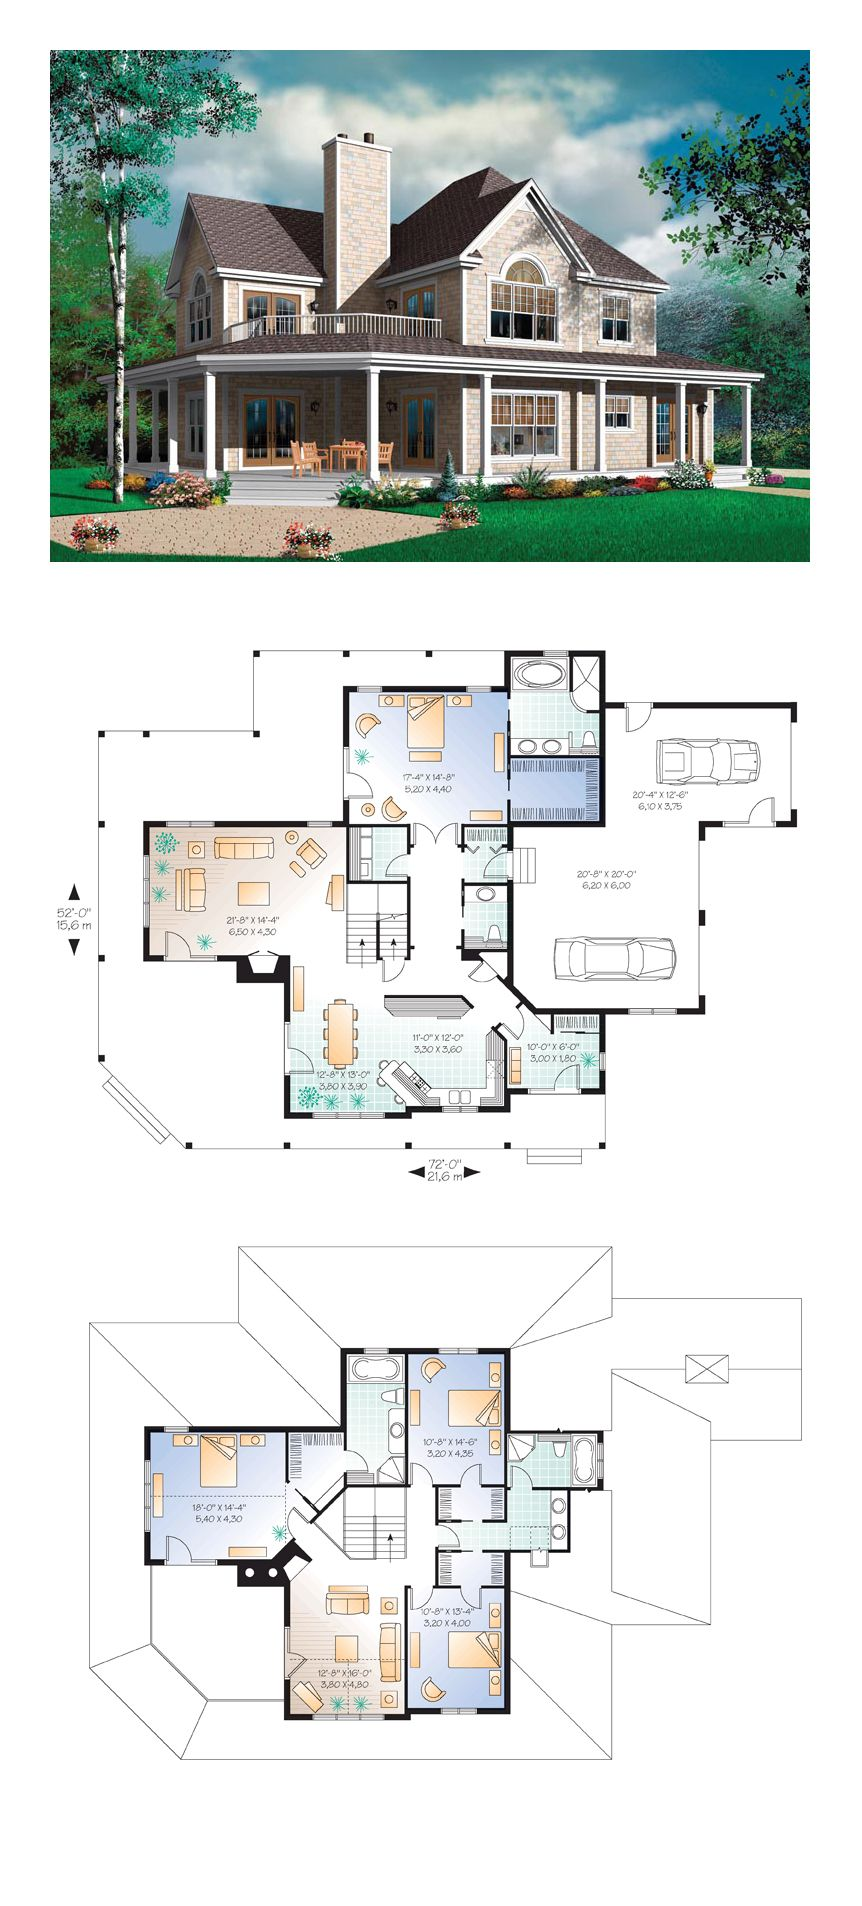 best selling cool house plan id chp 22158 total living area best selling cool house plan id chp 22158 total living area 2992